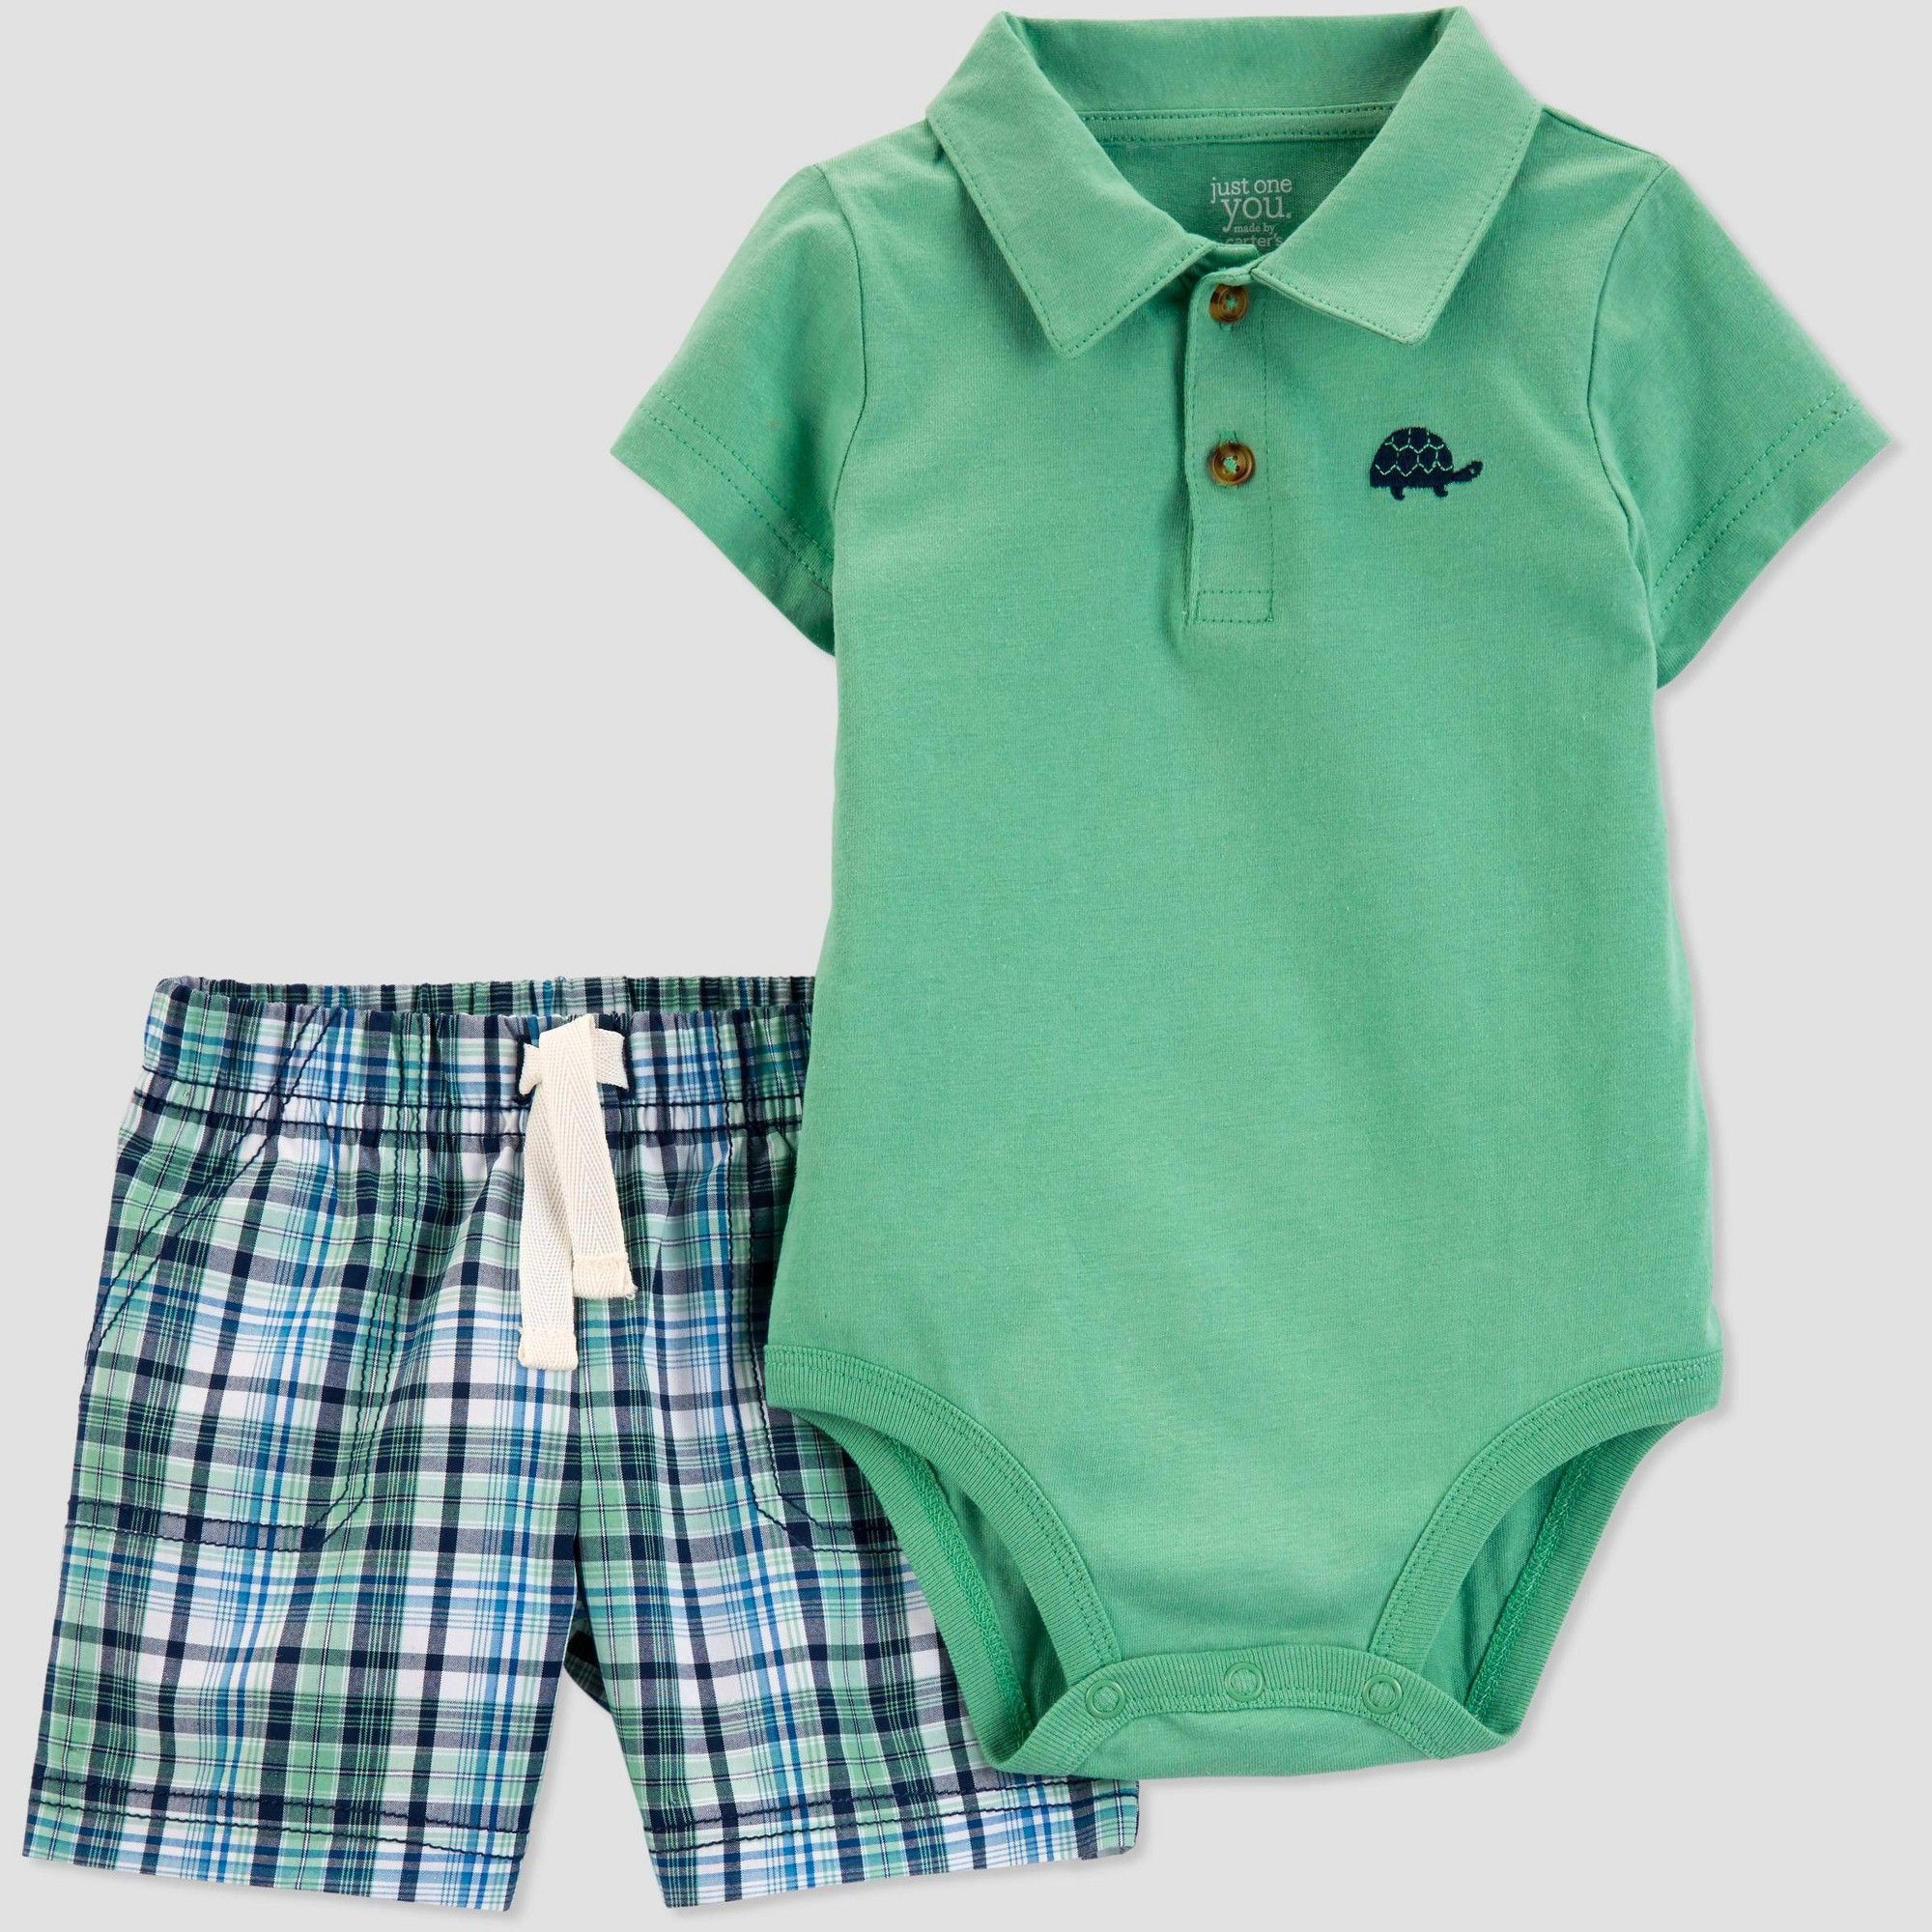 67f4c0ab2 Baby Boys' 2pc Plaid Turtle Shorts Set - Just One You made by carter's  Green 18M